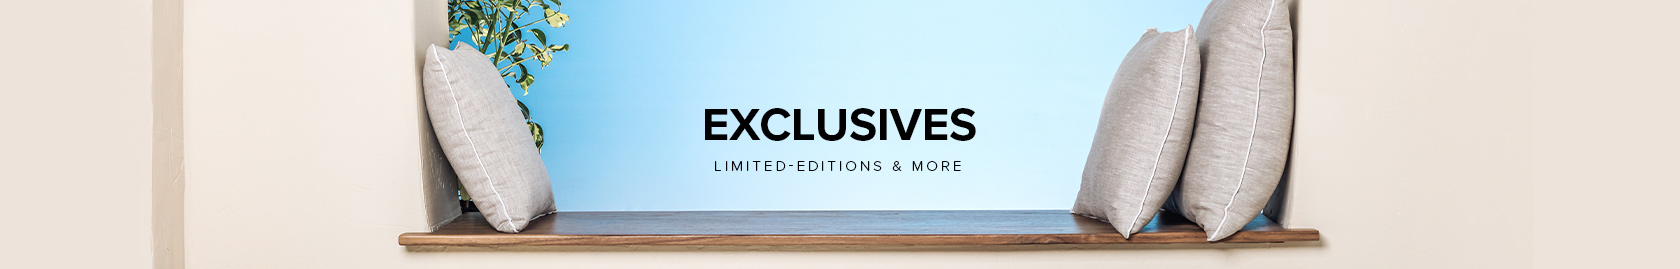 Exclusives - Limited Editions and More